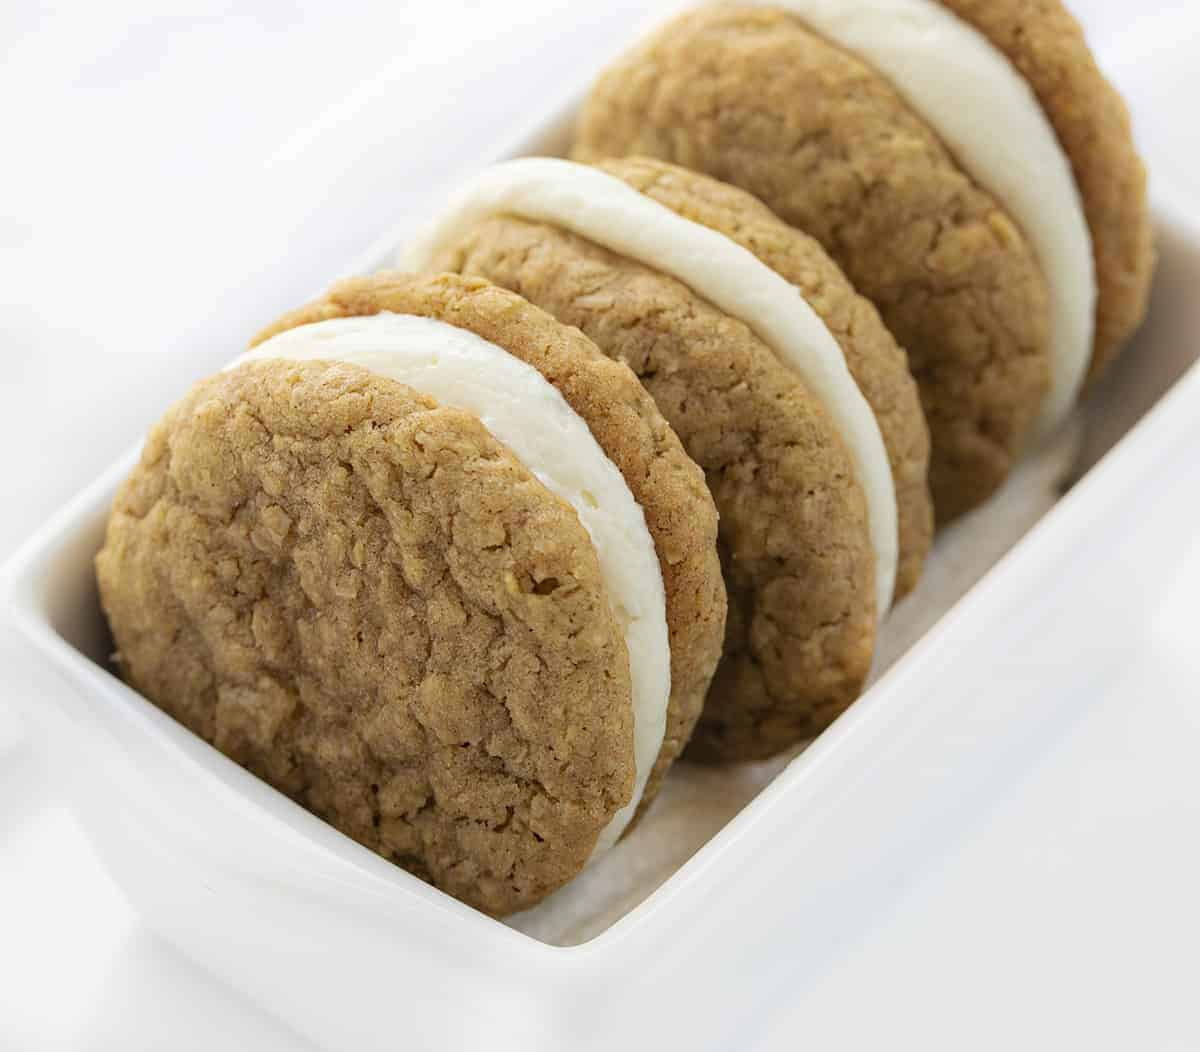 Oatmeal Cream Pie Cookies Stacked in White Ceramic Dish